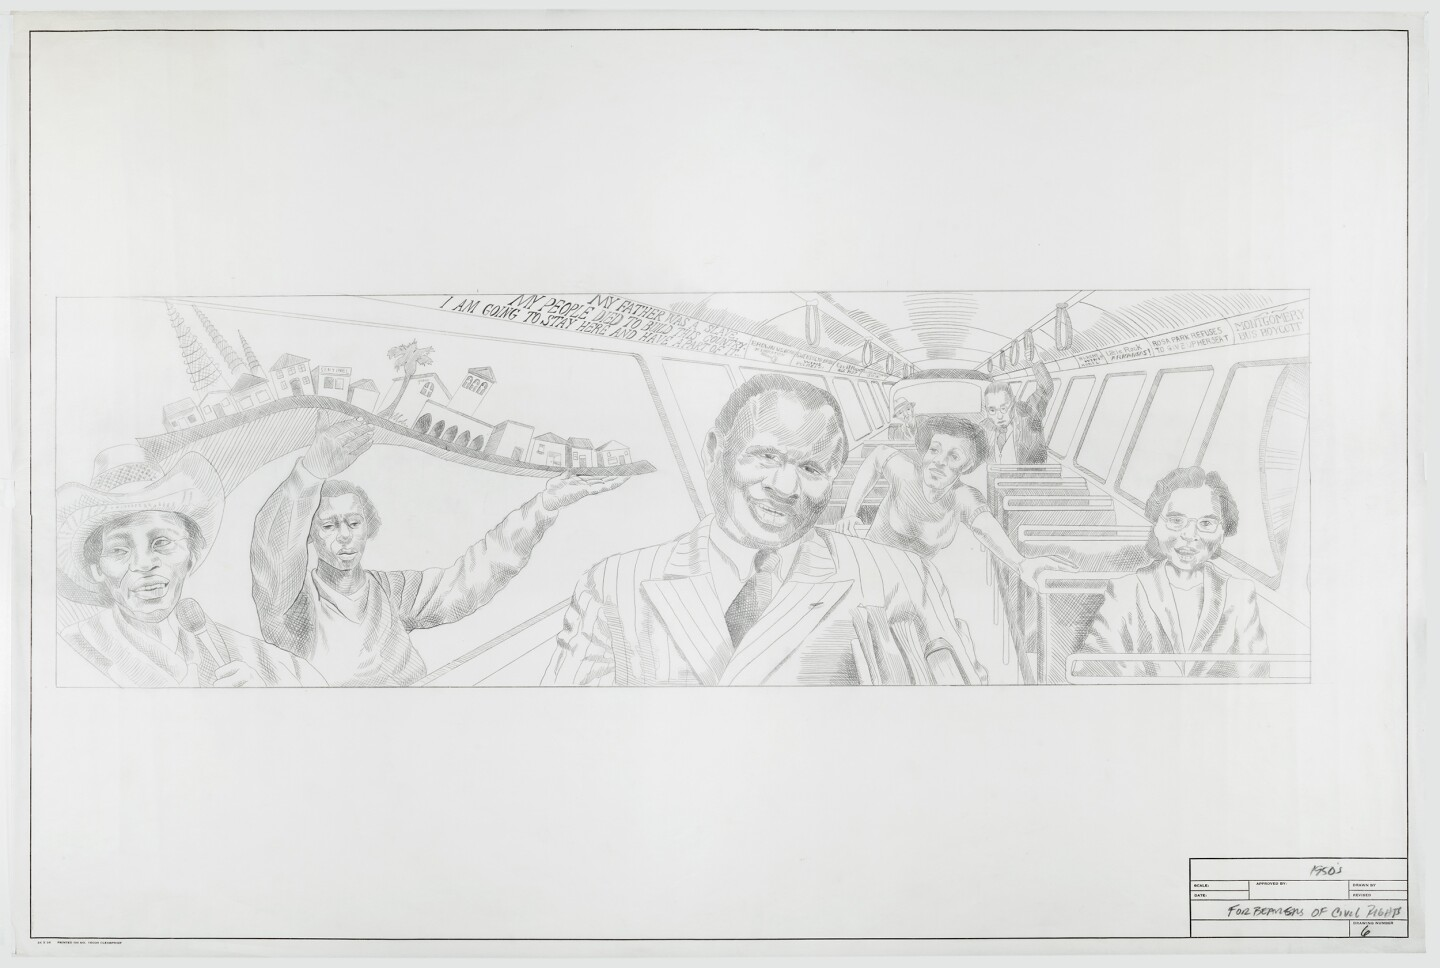 "A 1983 graphite sketch of ""The Great Wall of Los Angeles 1950: Forebearers of Civil Rights"" depicting prominent civil rights leaders and activists like Paul Robeson, Rosa Parks, Gwendolyn Brooks, Ralph Bunche and Martin Luther King, Jr. rising from their bus seats."